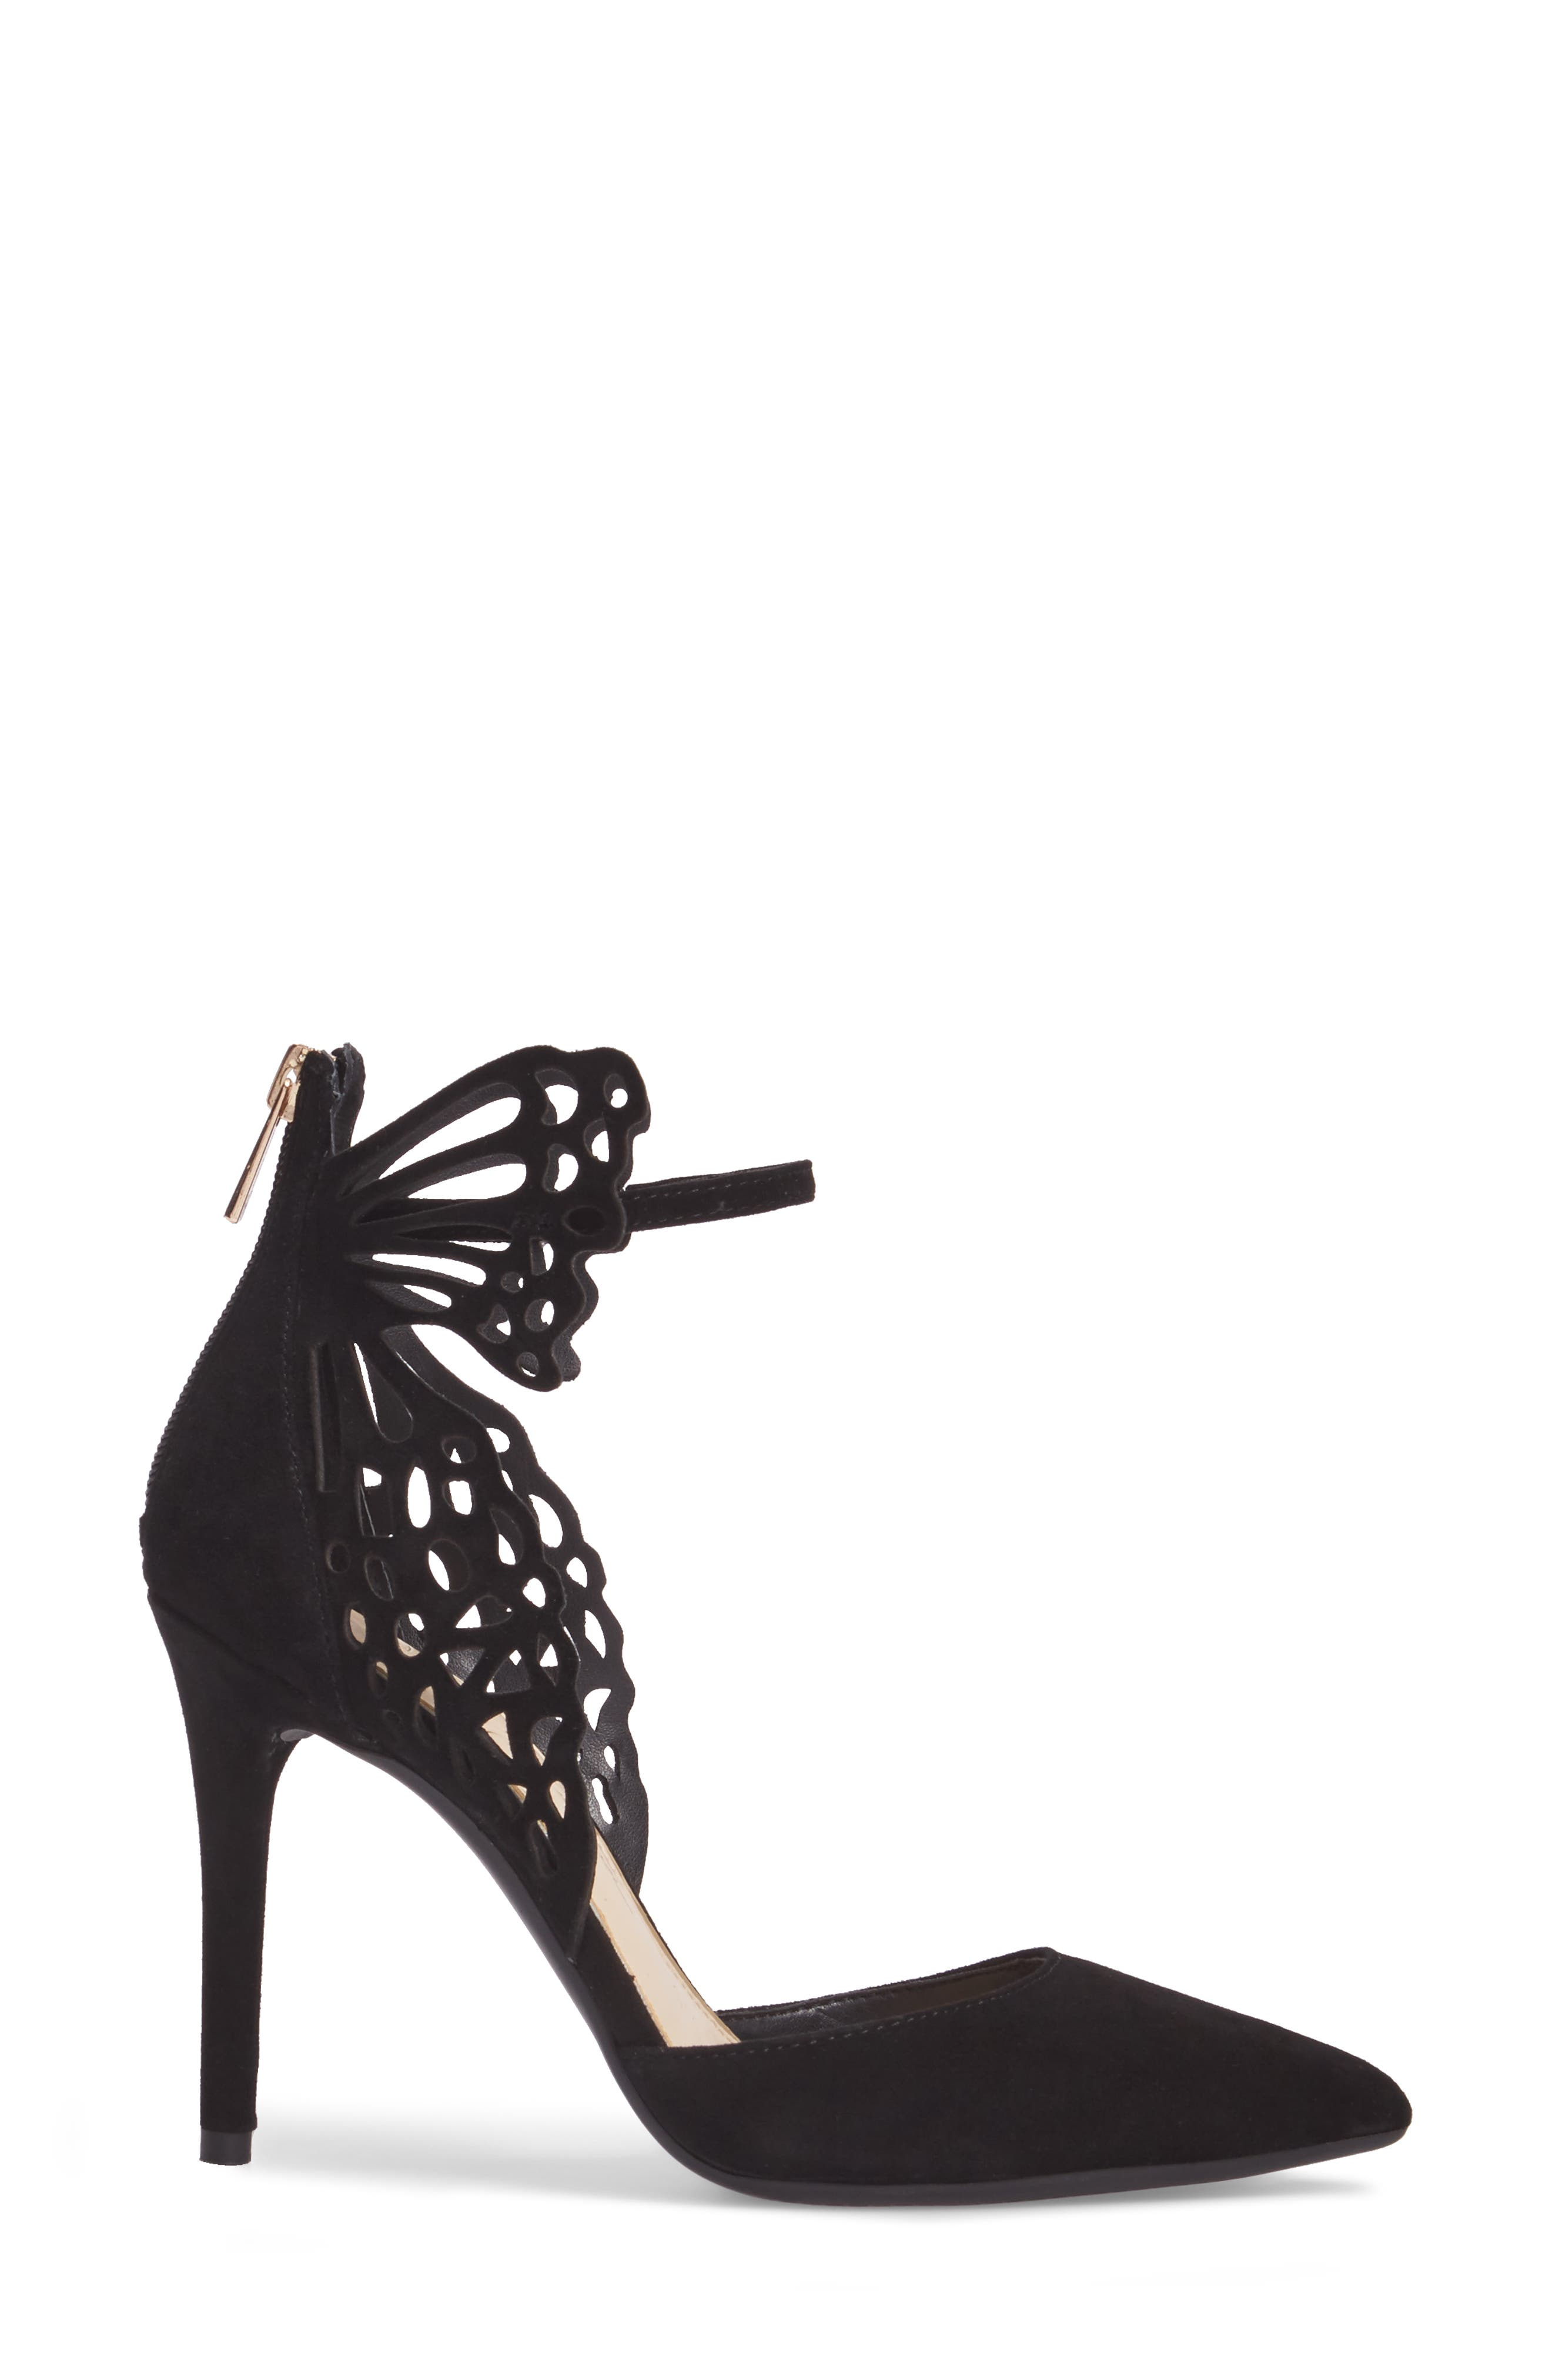 Leasia Butterfly Pump,                             Alternate thumbnail 7, color,